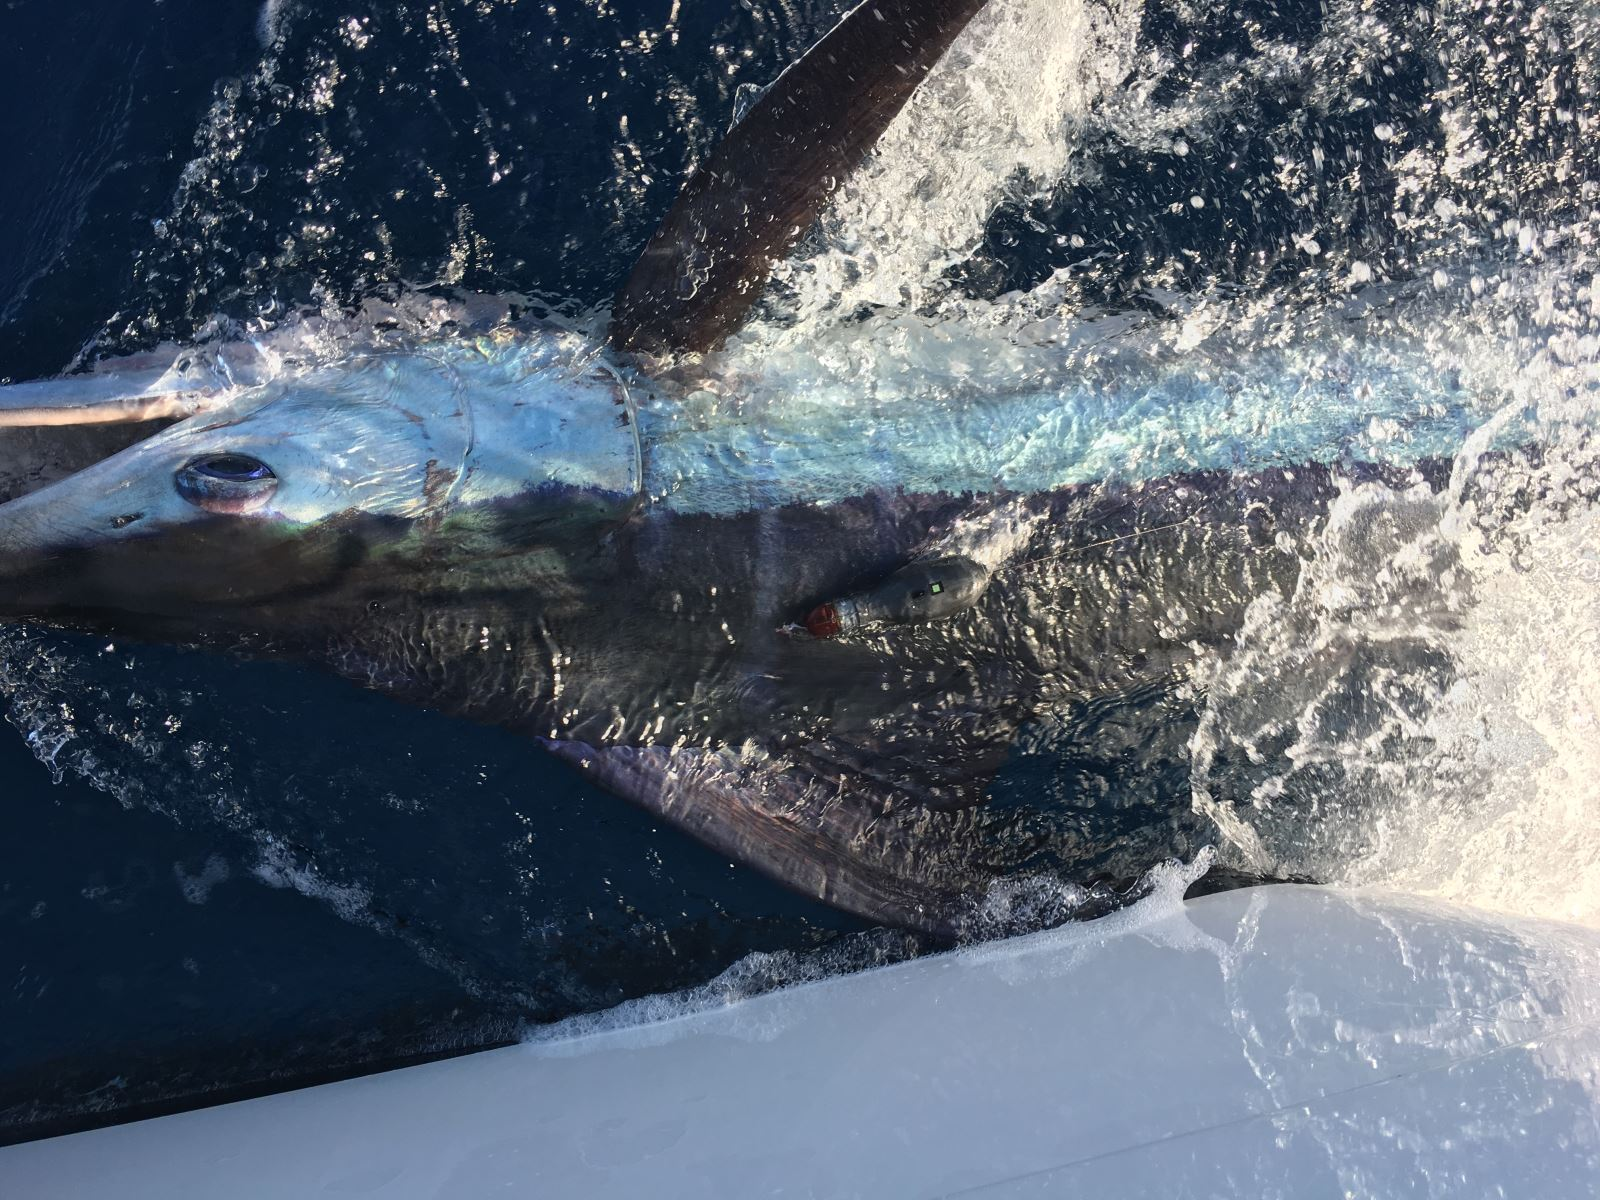 The first fish caught in the 2015 Master Angler Billfish Tournament